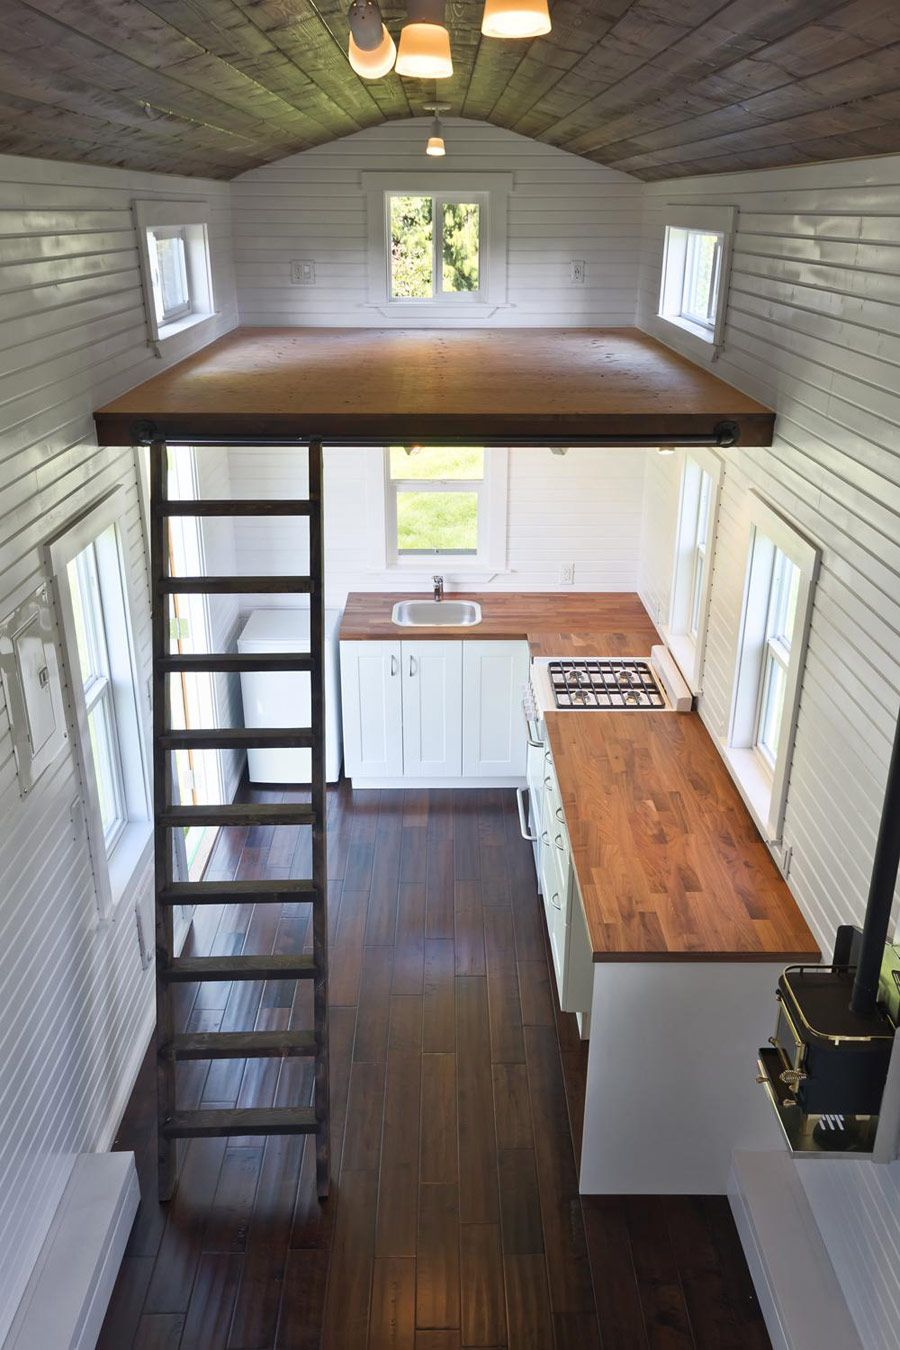 A 224 square feet tiny house on wheels in Delta, British Columbia ...